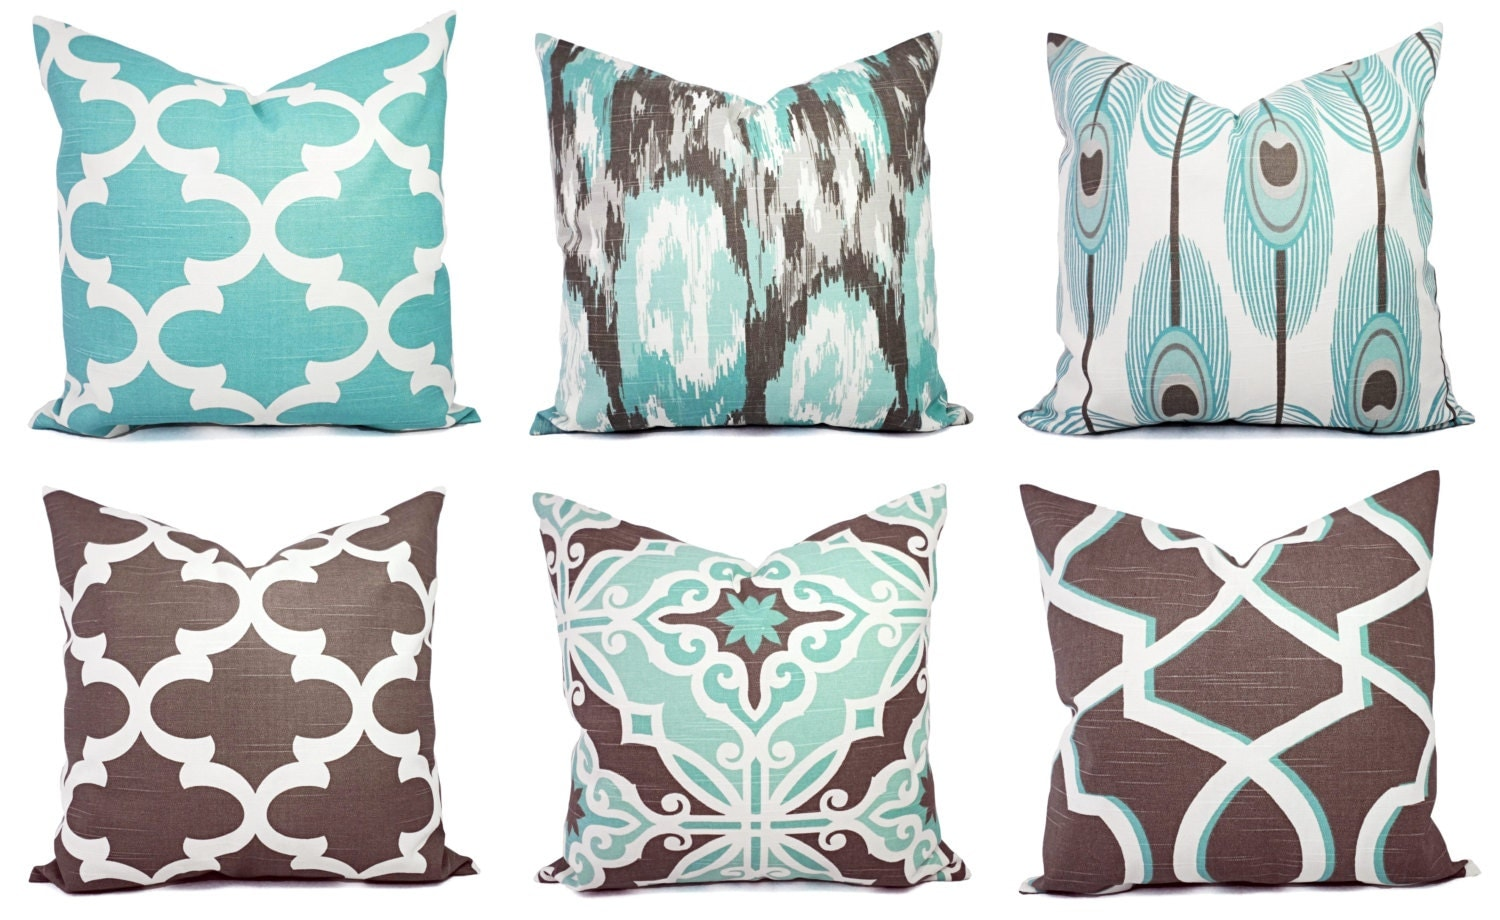 Blue And Brown Decorative Pillow Cover : Decorative Pillow Blue and Brown Pillow Cover Ikat Pillow